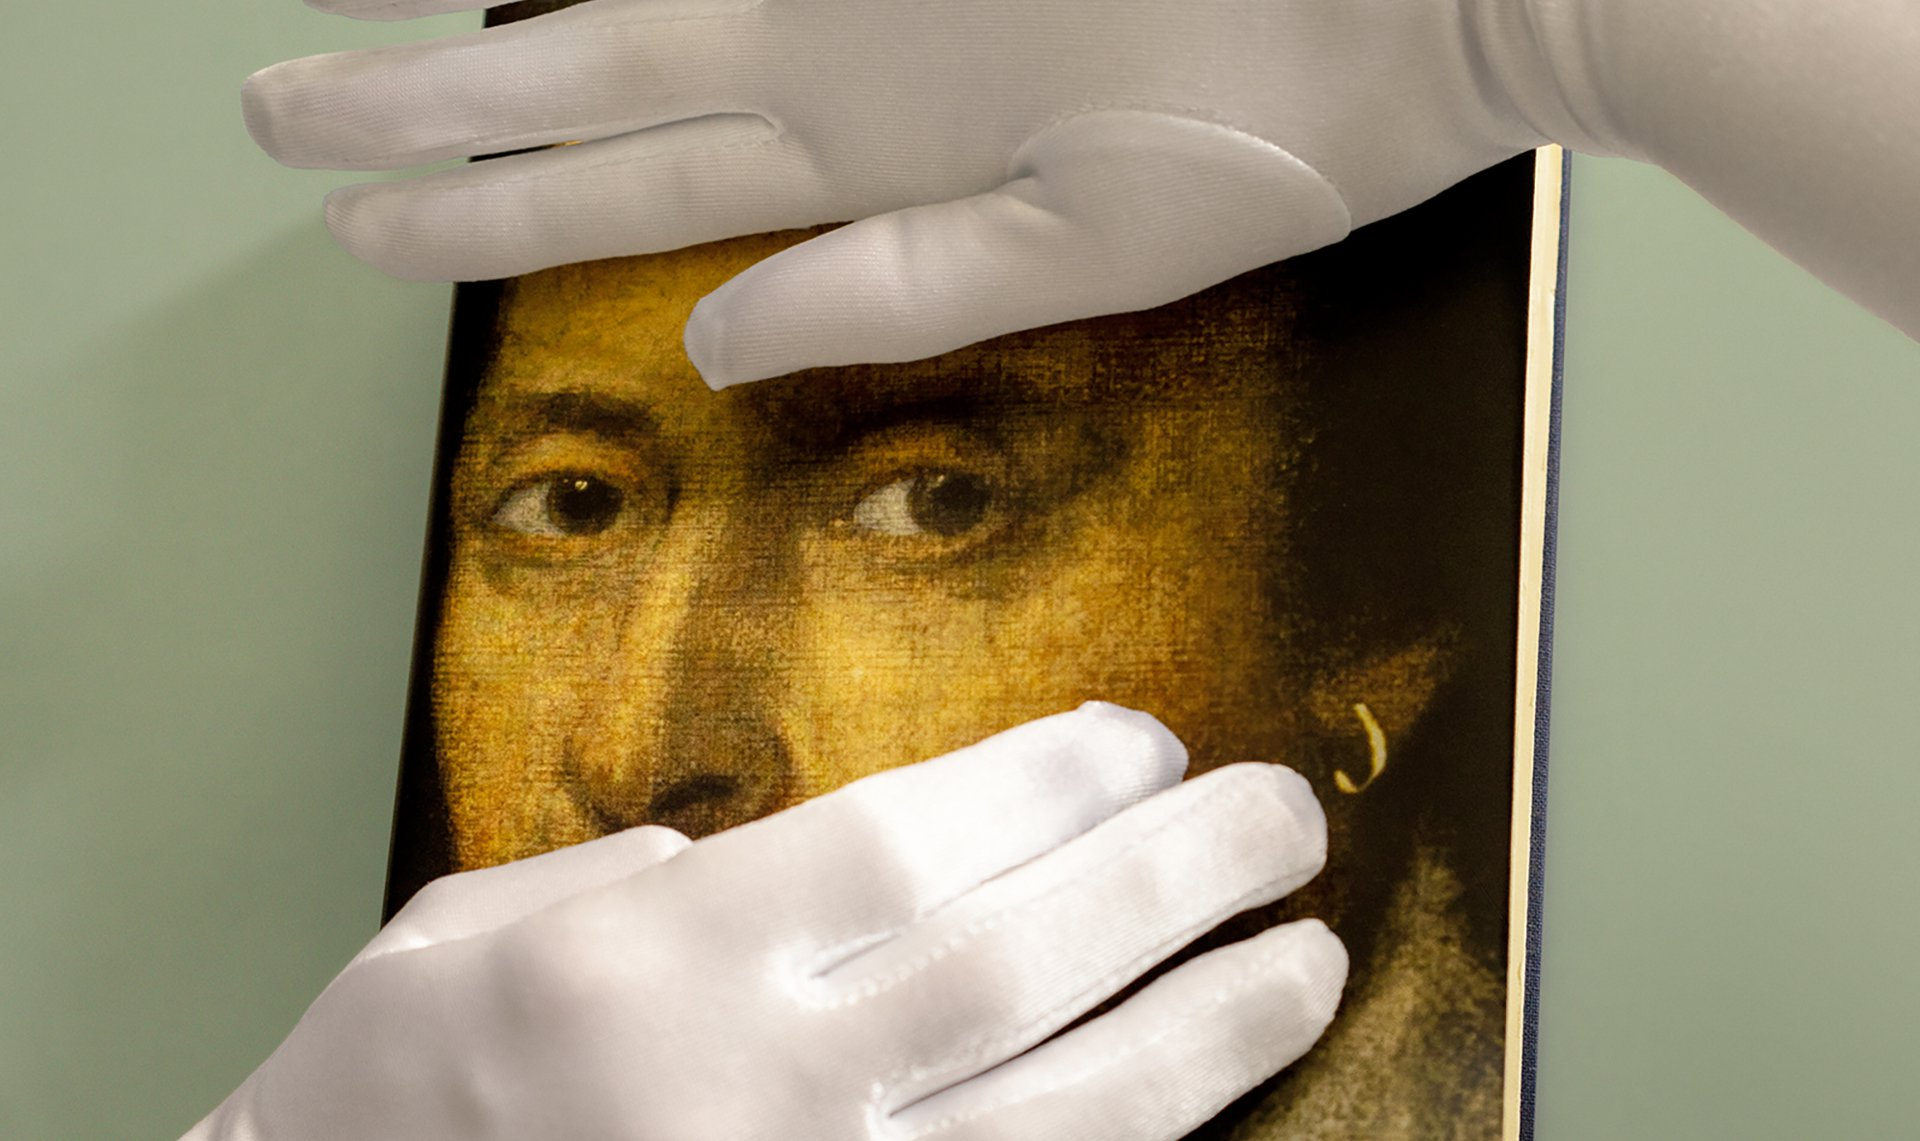 Who Was Shakespeare? Could the Author Have Been a Woman